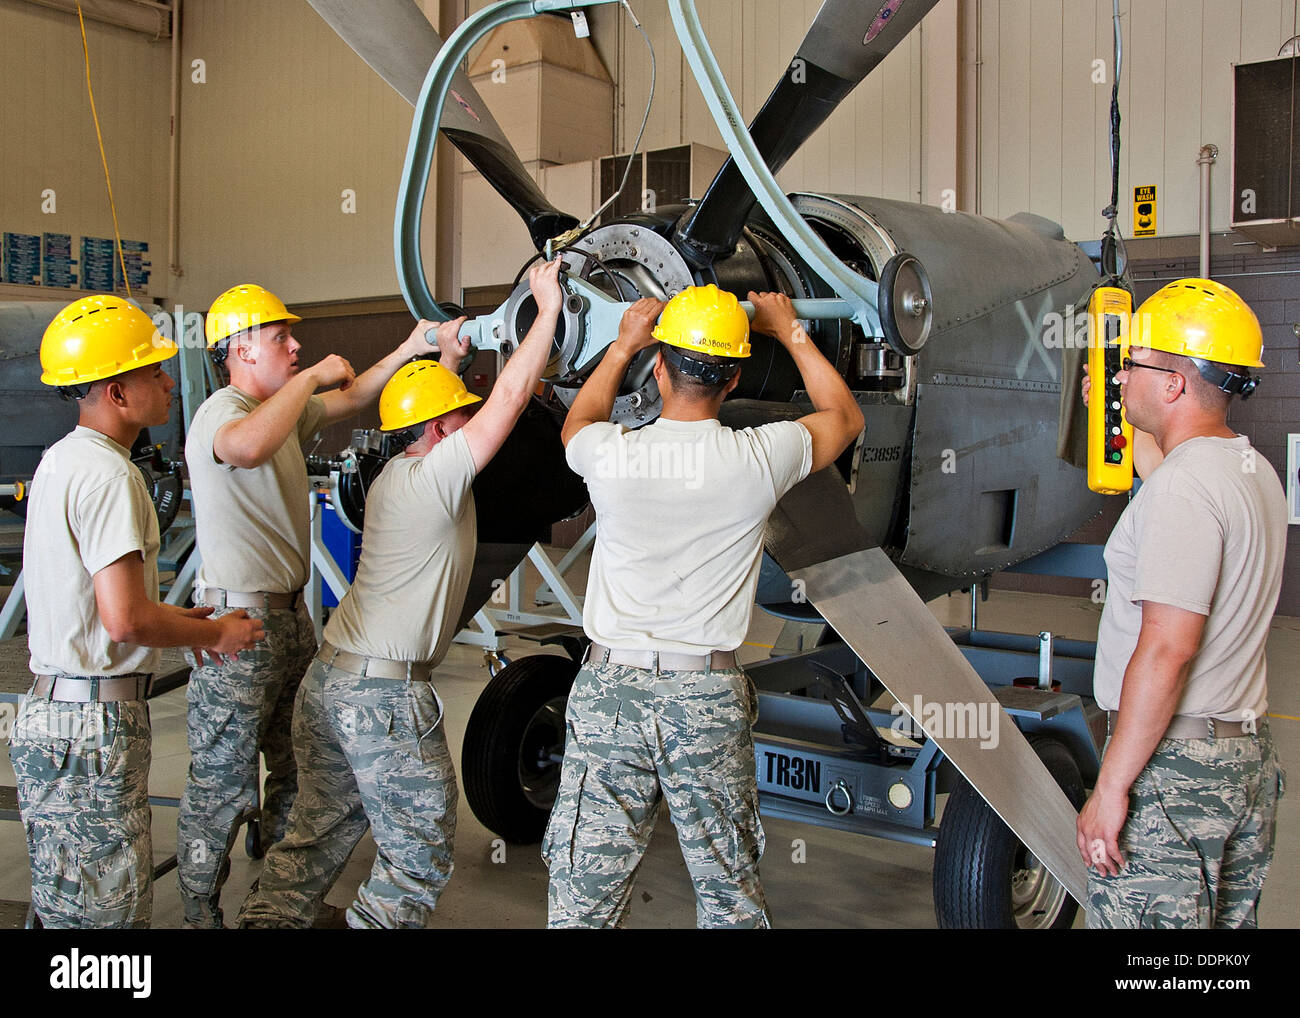 U.S. Air Force Airman Christian Botello, Justin Trathen, Instructor Staff Sgt. Justin Boyd, Airman Samuel Kwon and Airman 1st Class Kyle Koepkey, 361st Training Squadron, Jet Propulsion course are installing a Propeller Lifting Adapter for the removal of - Stock Image